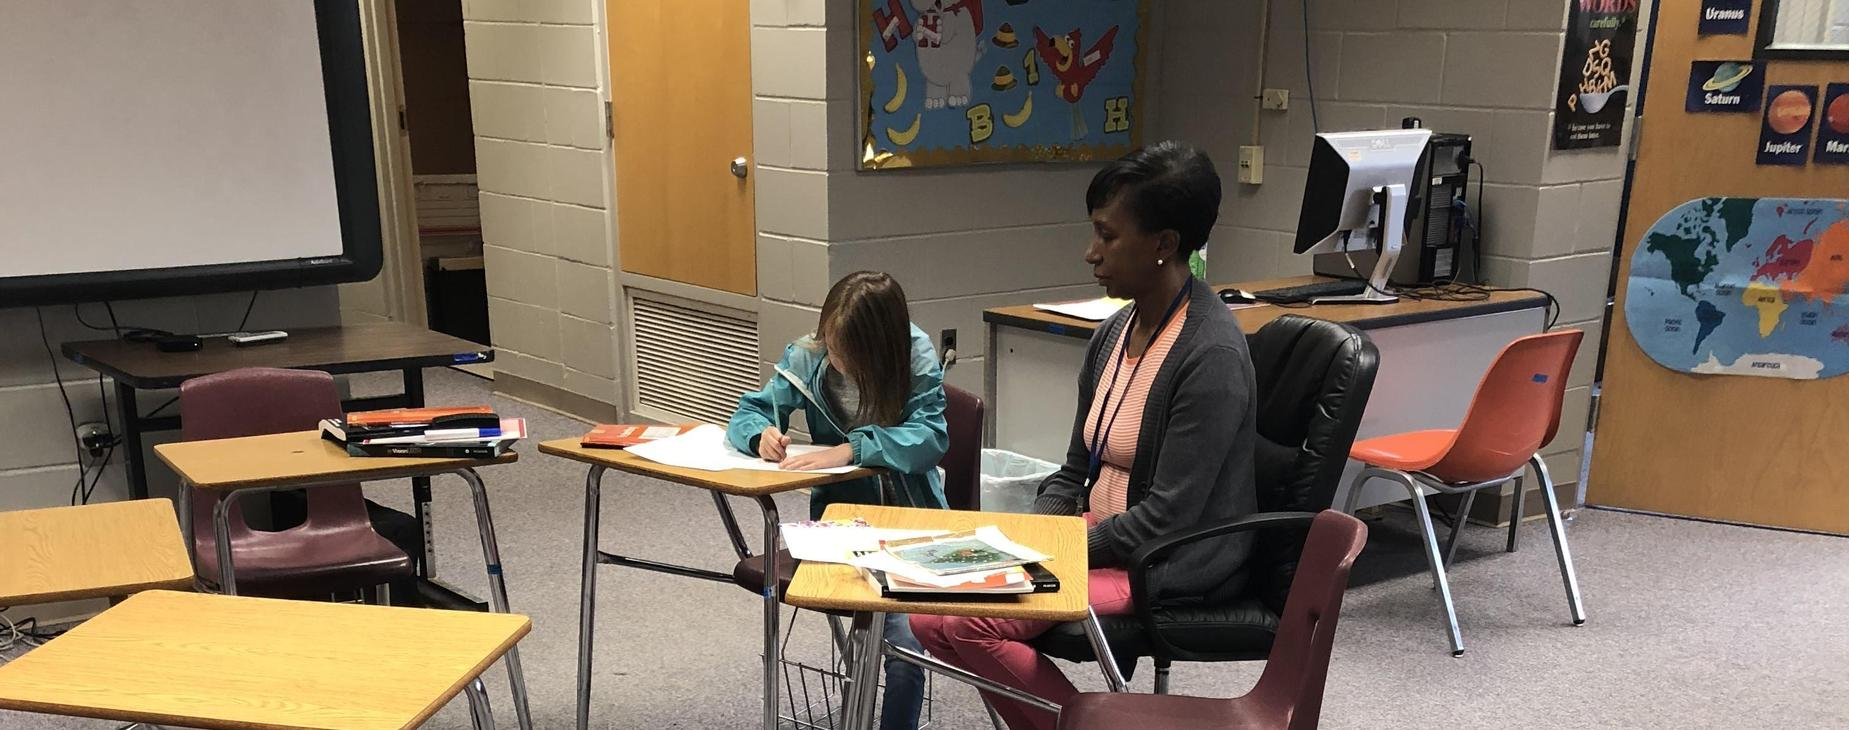 Ms. Cunningham helping student with work.